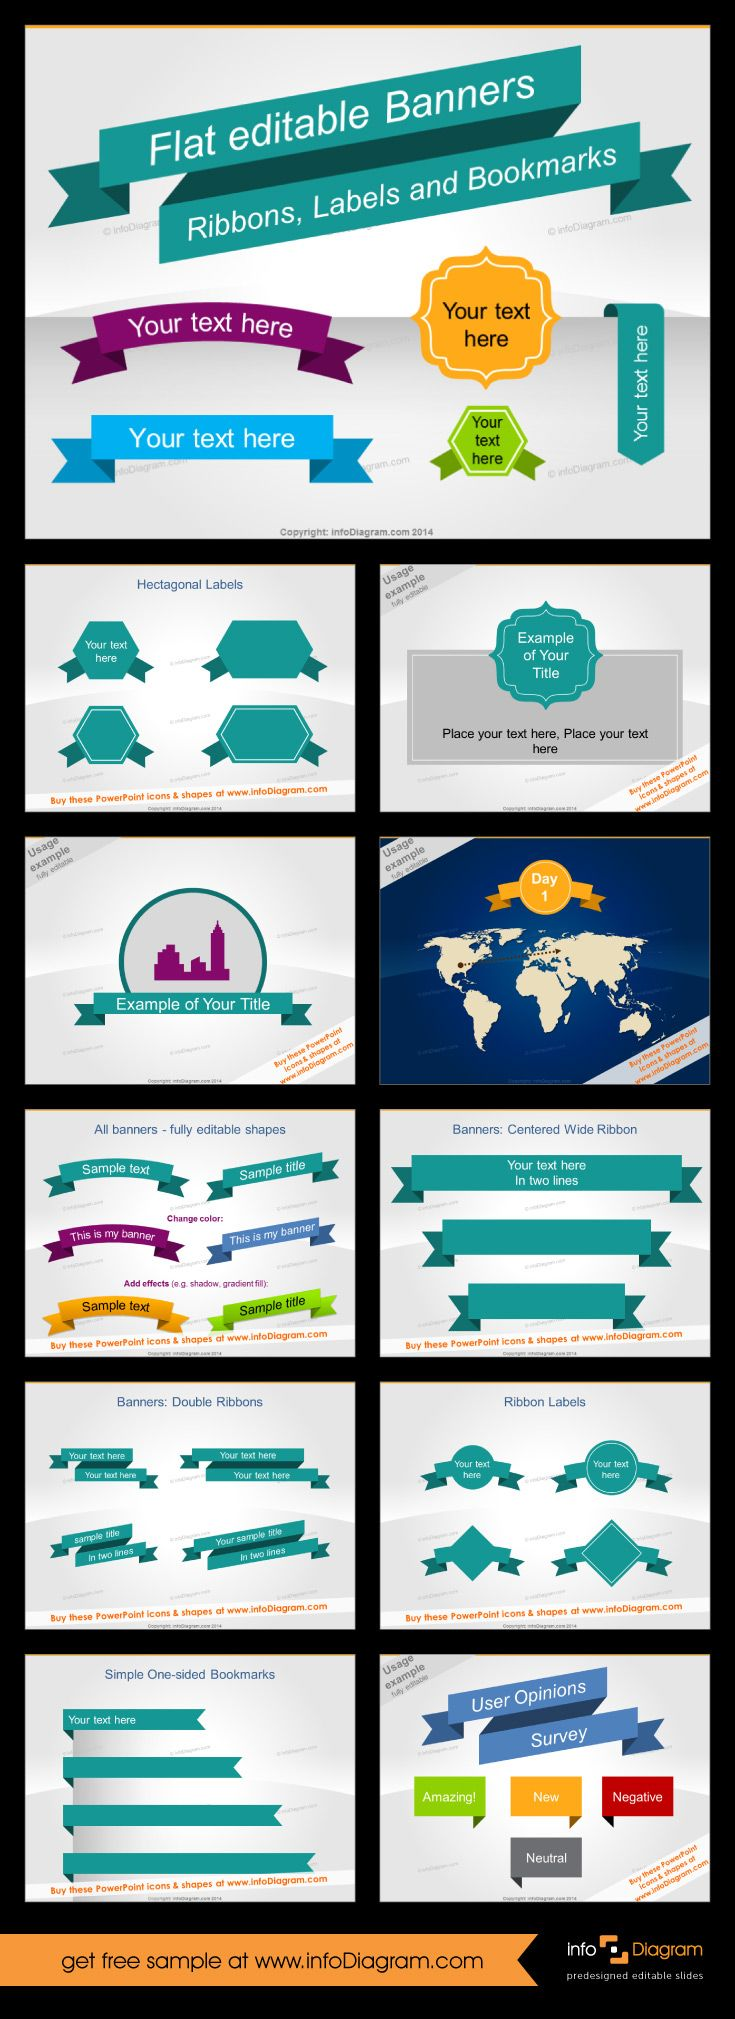 Flat editable banners for PowerPoint